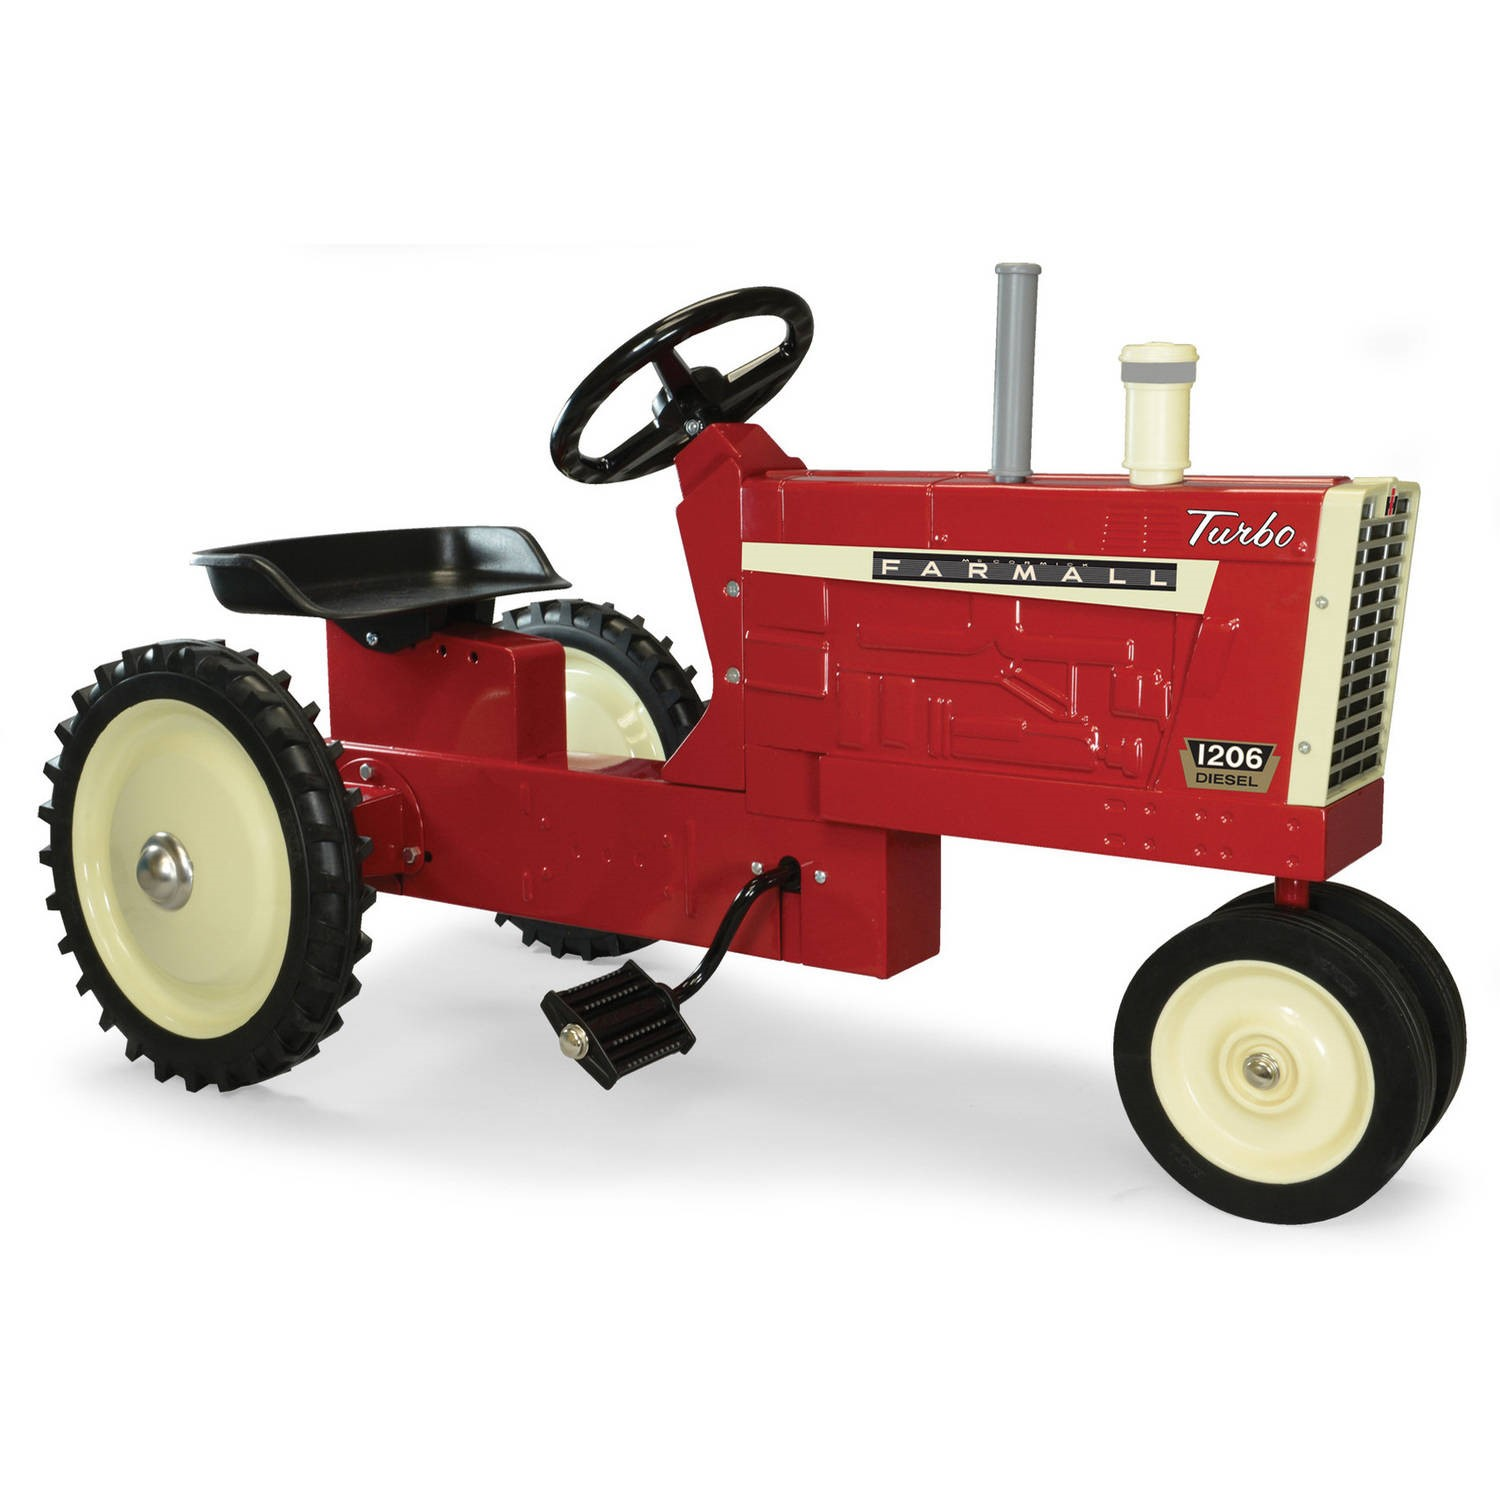 ERTL Farmall Pedal Tractor, Red